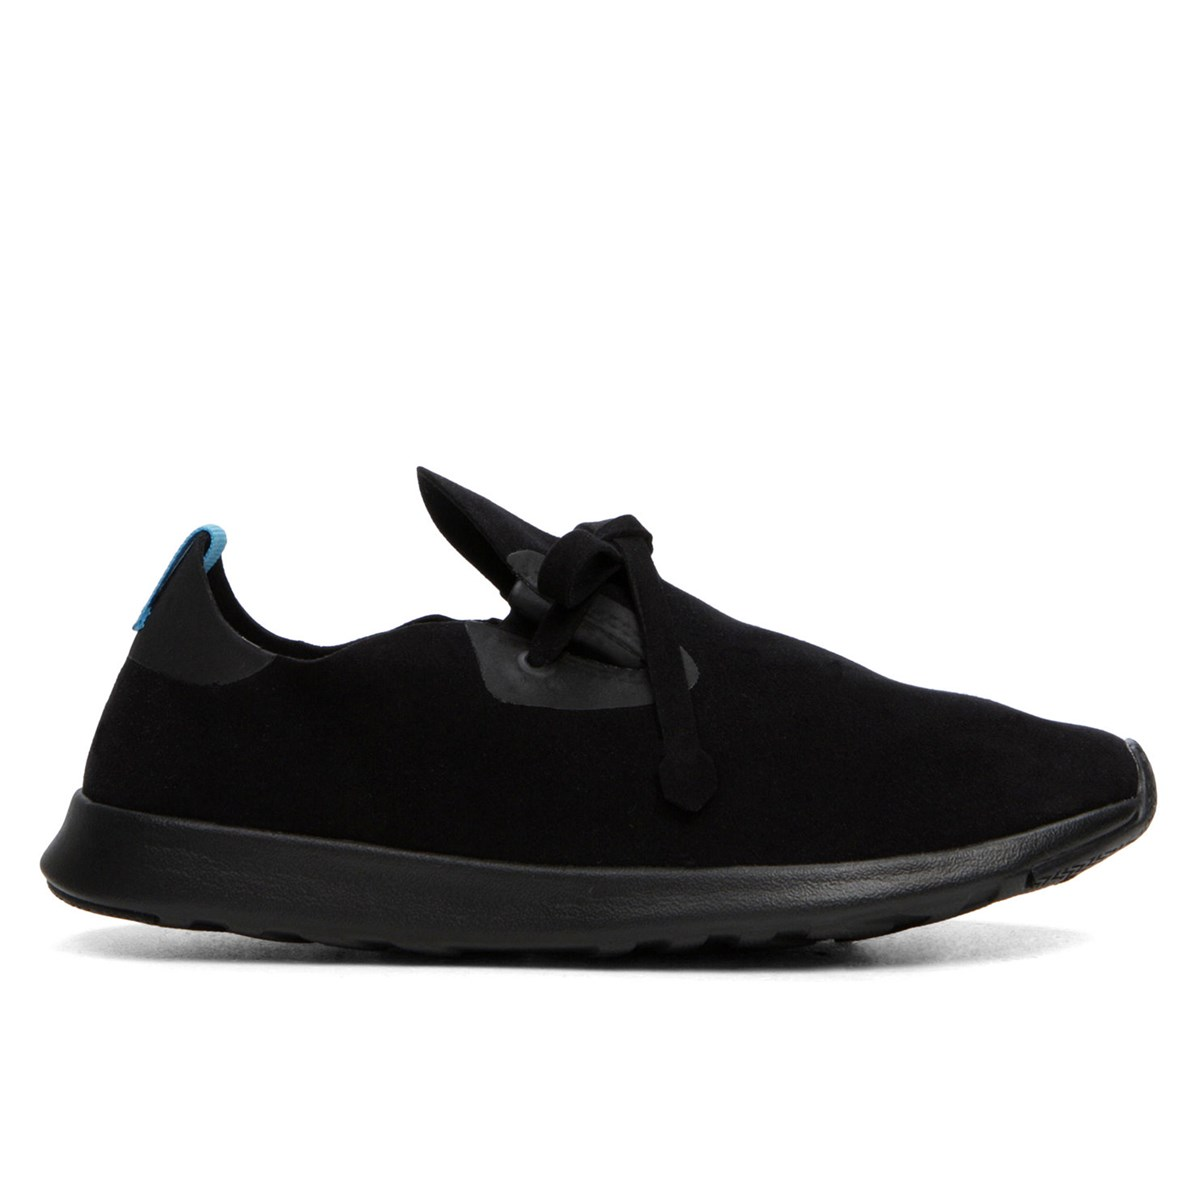 Women's Apollo Moc Black Sneaker